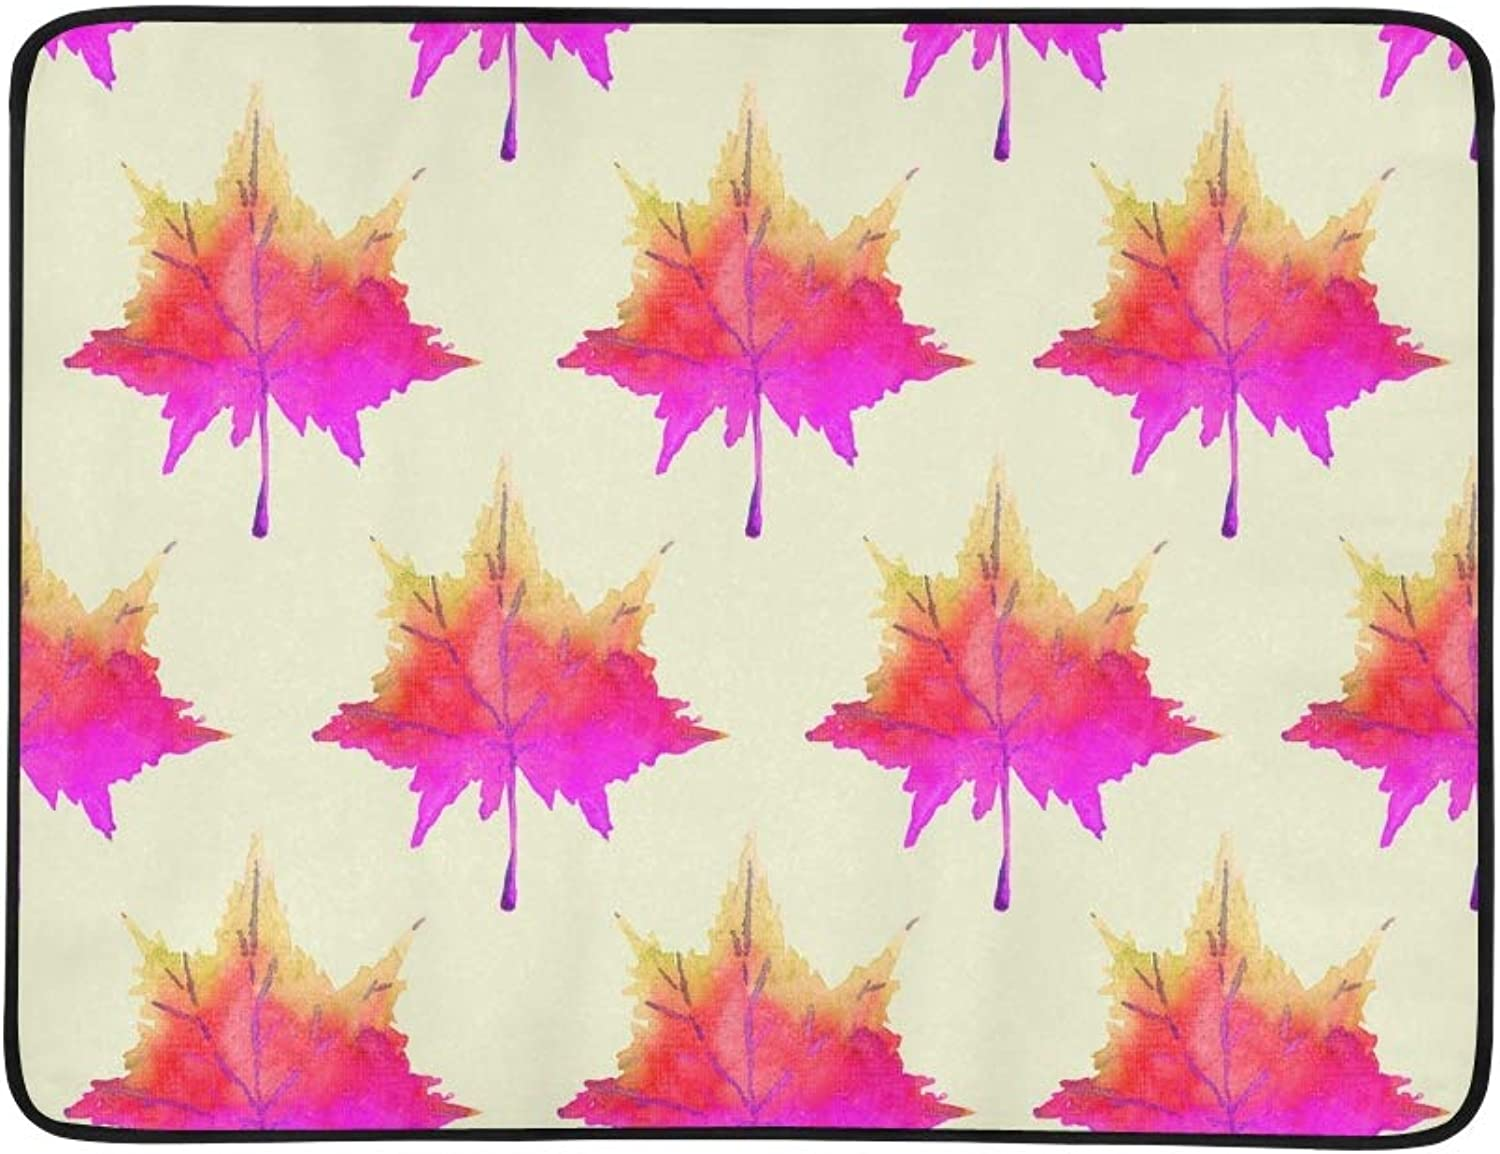 colorful Red Maple Leaves Hand Painted Portable and Foldable Blanket Mat 60x78 Inch Handy Mat for Camping Picnic Beach Indoor Outdoor Travel